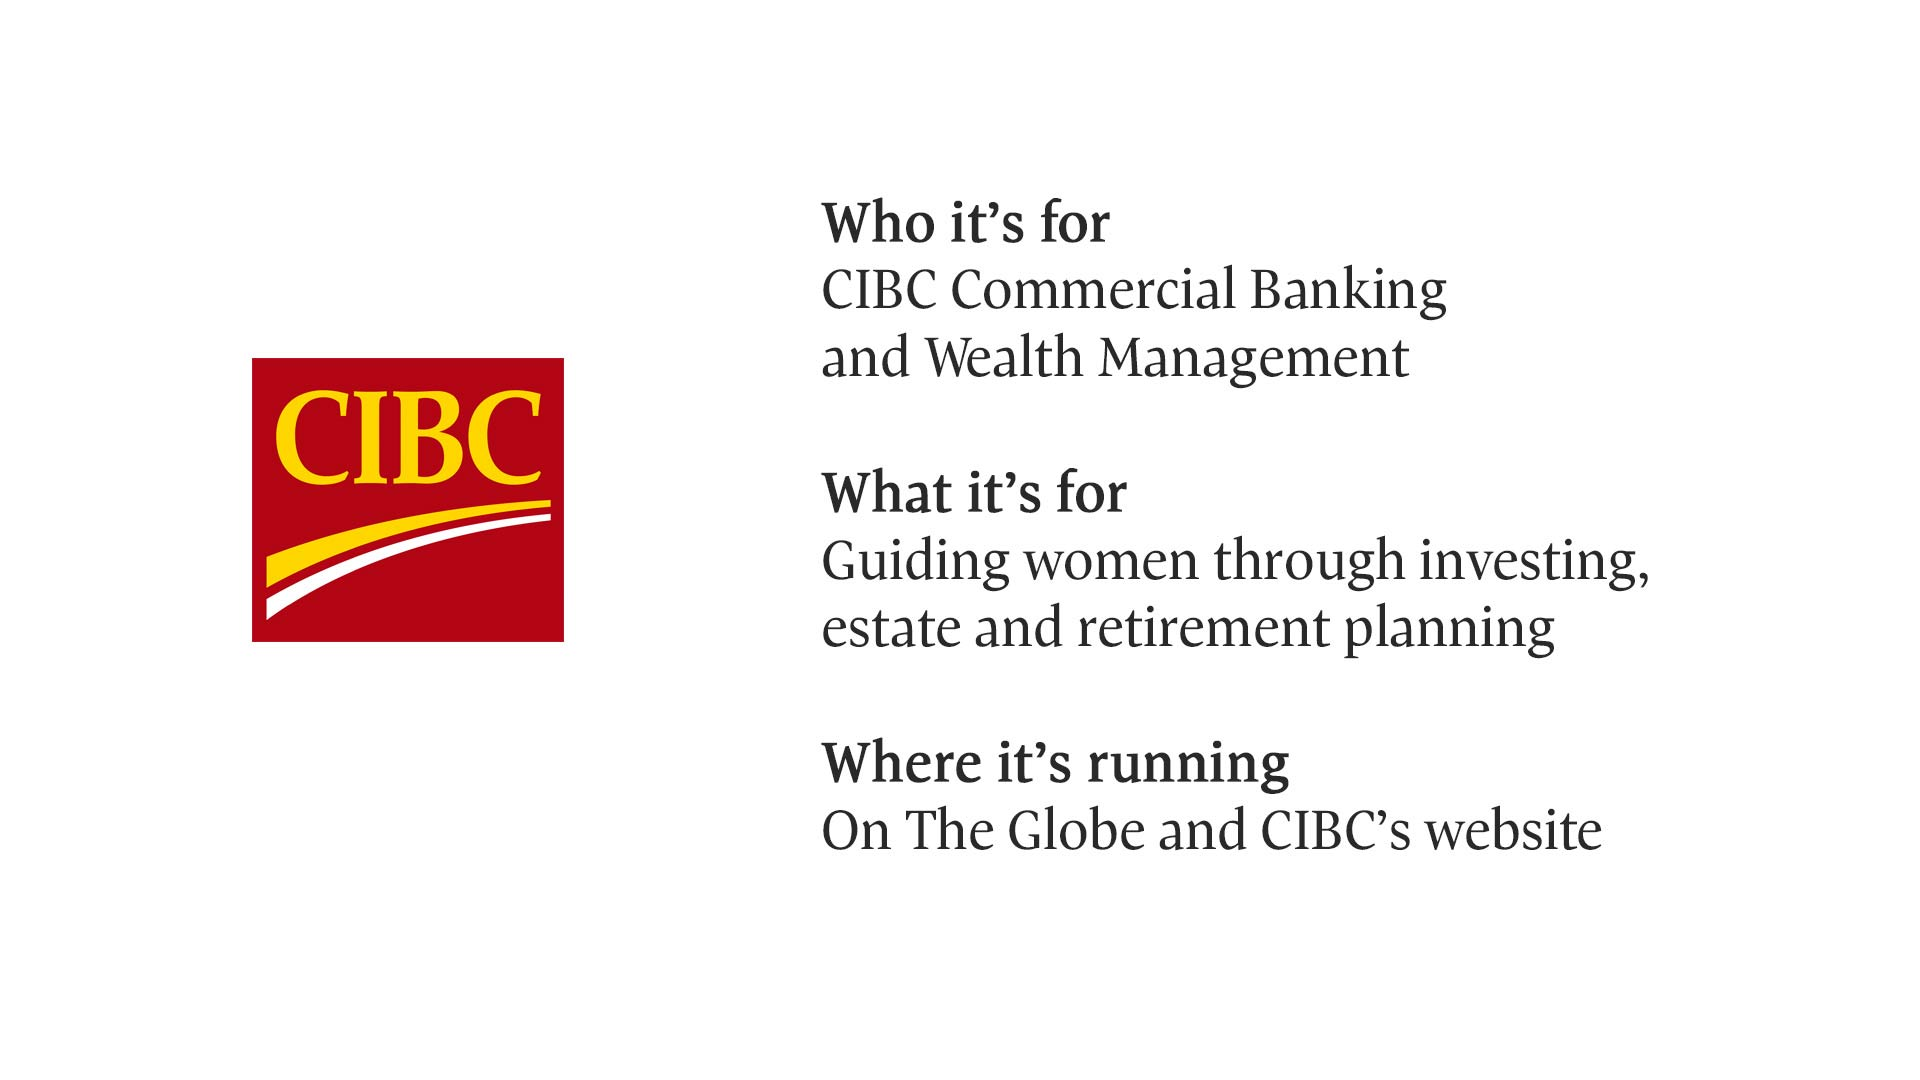 CIBC-Her-Worth-Take-Action-4